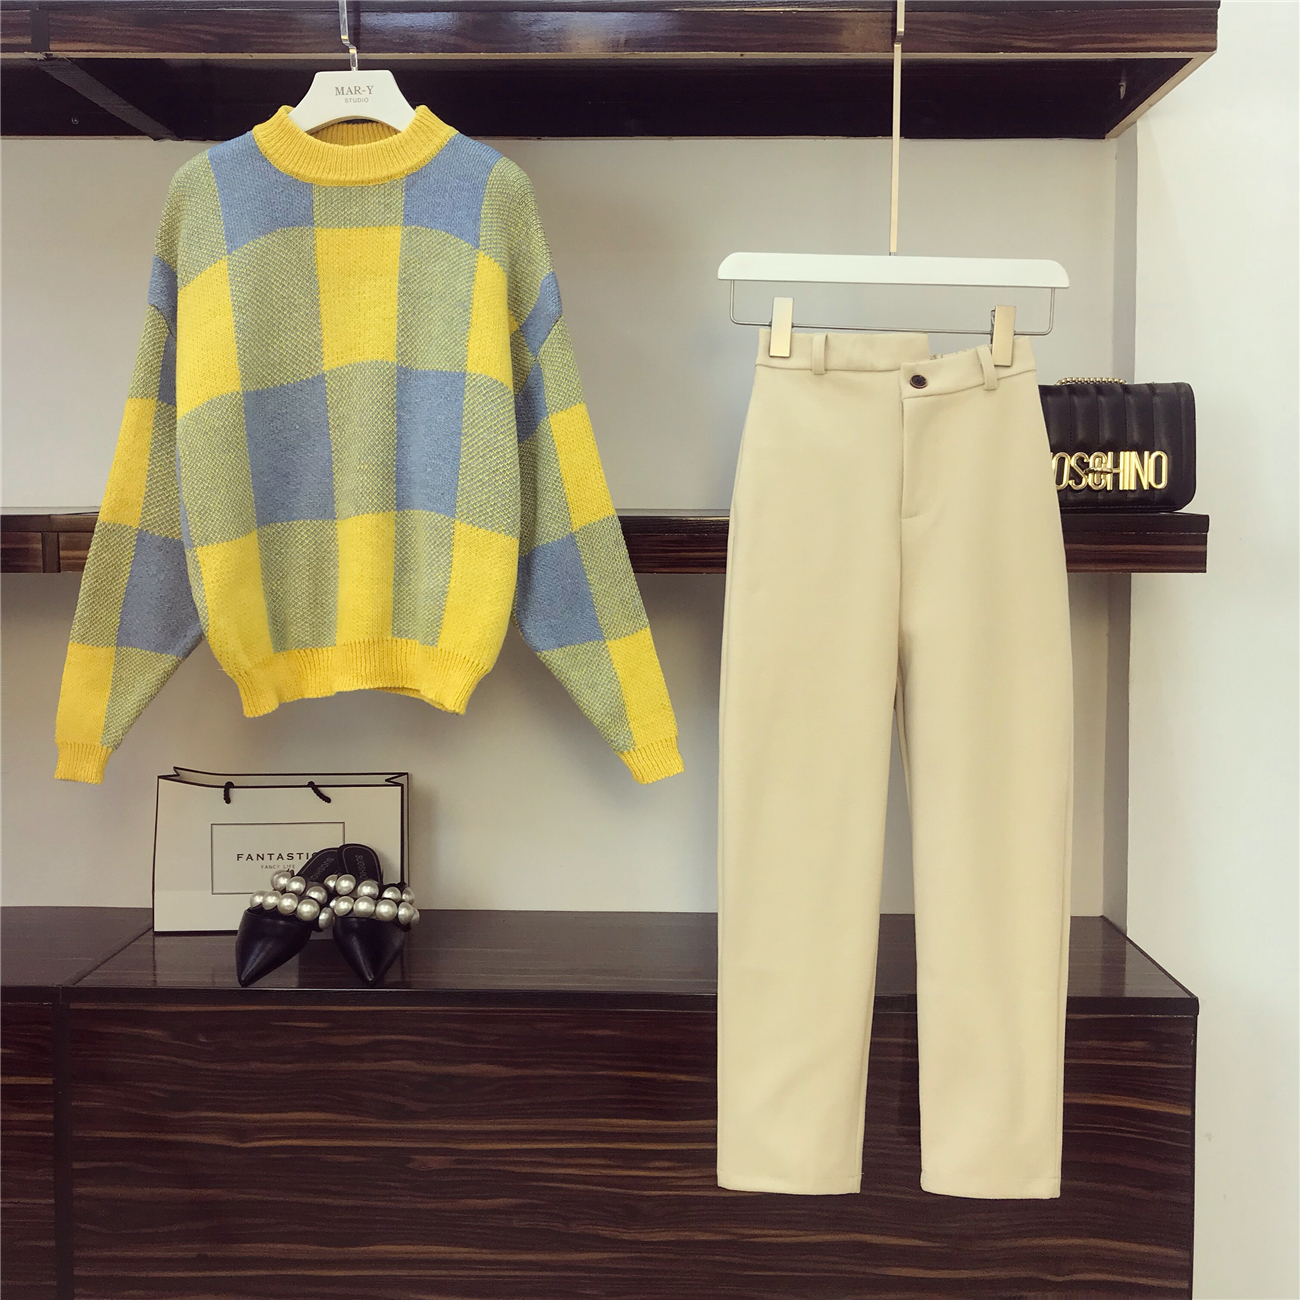 2018 New Fashion Autumn Women's Long Sleeve Loose Sweater + Woolen Haren Pants Two Pieces Students Leisure Pants Sets 8